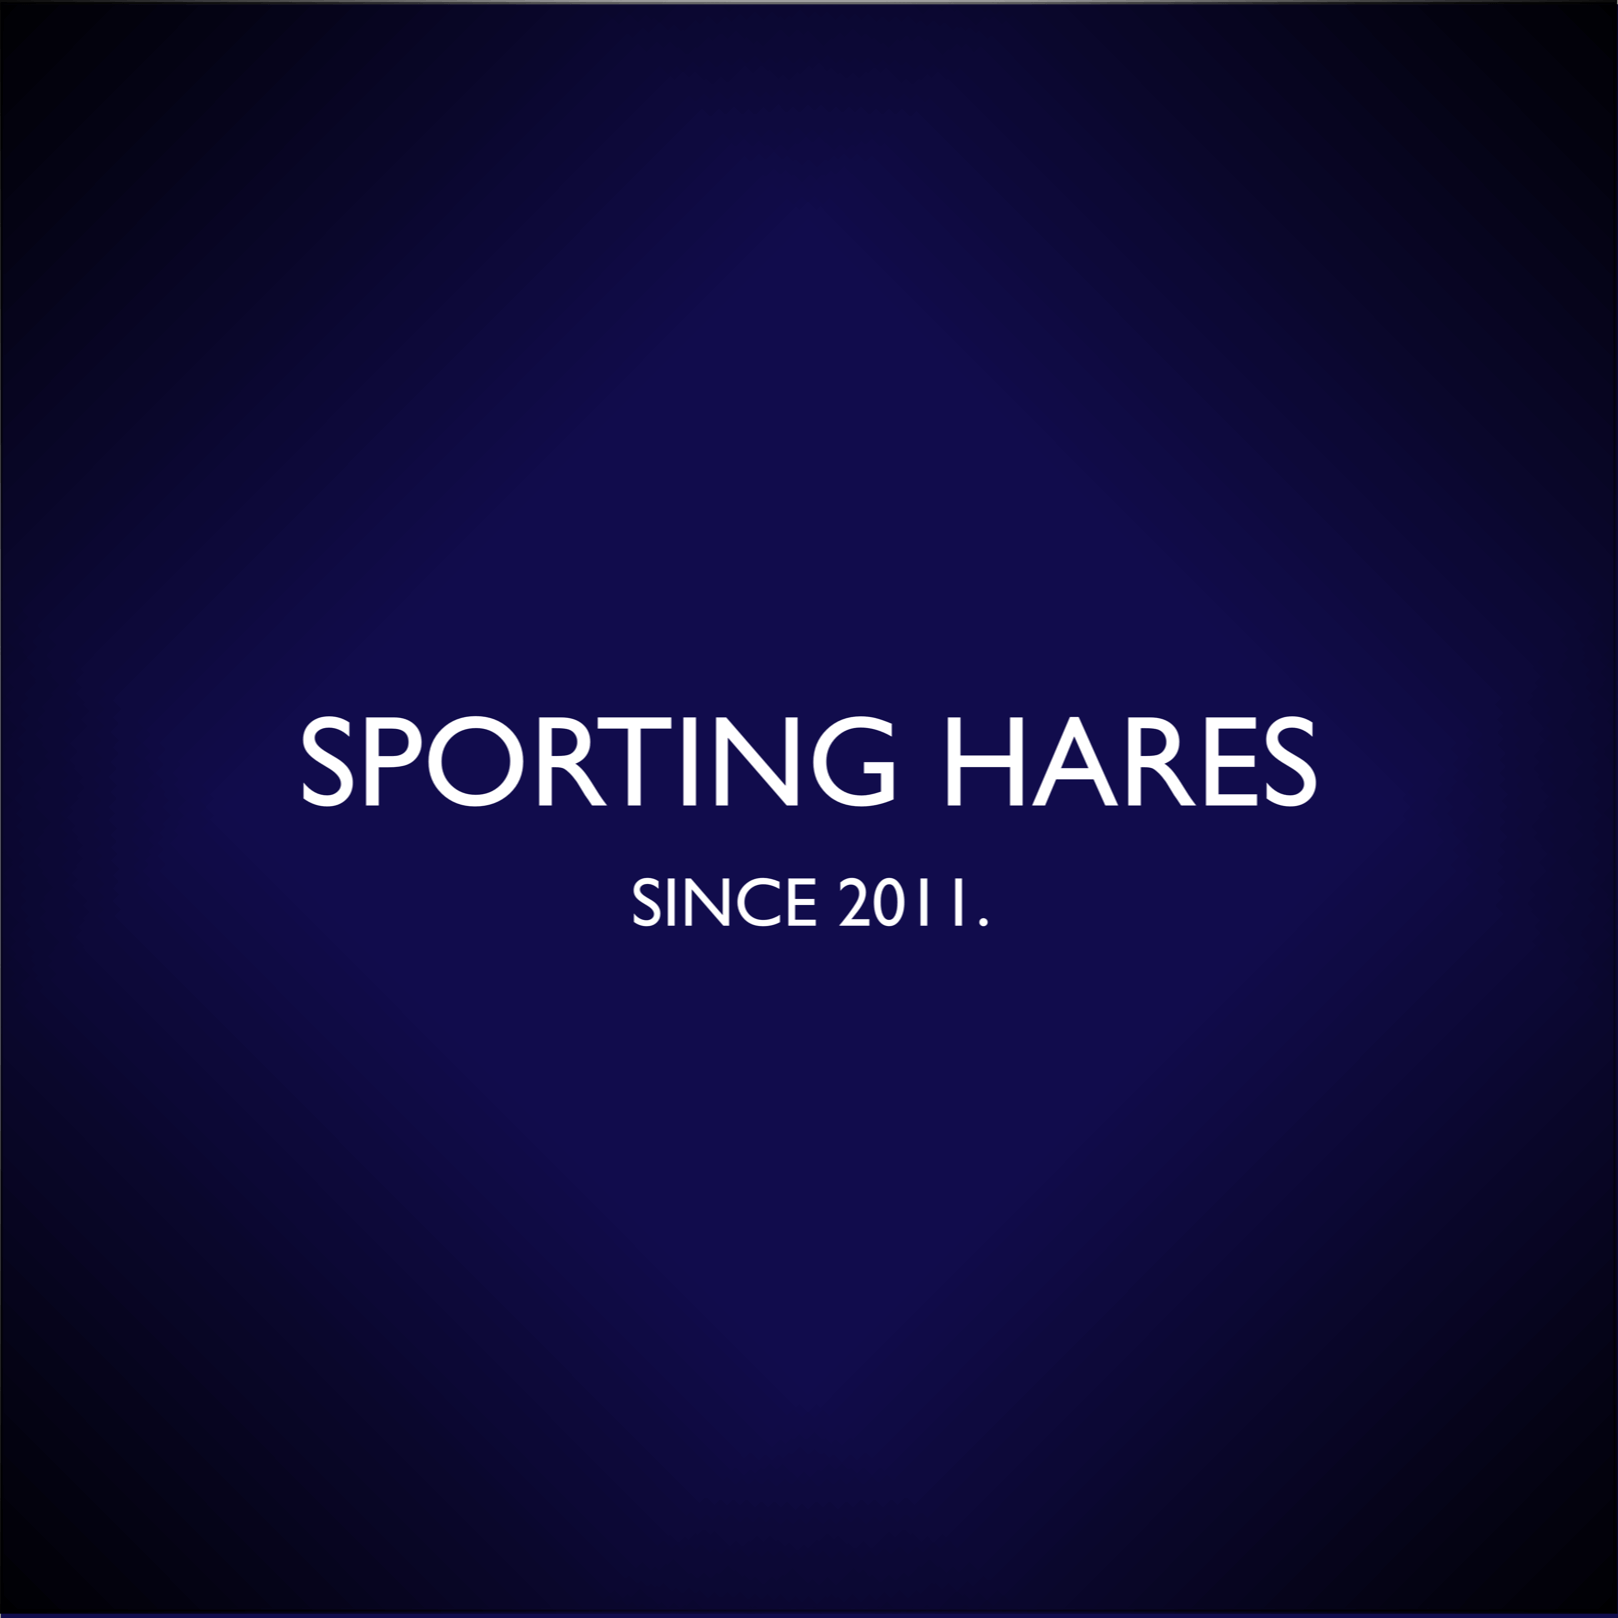 Sporting Hares